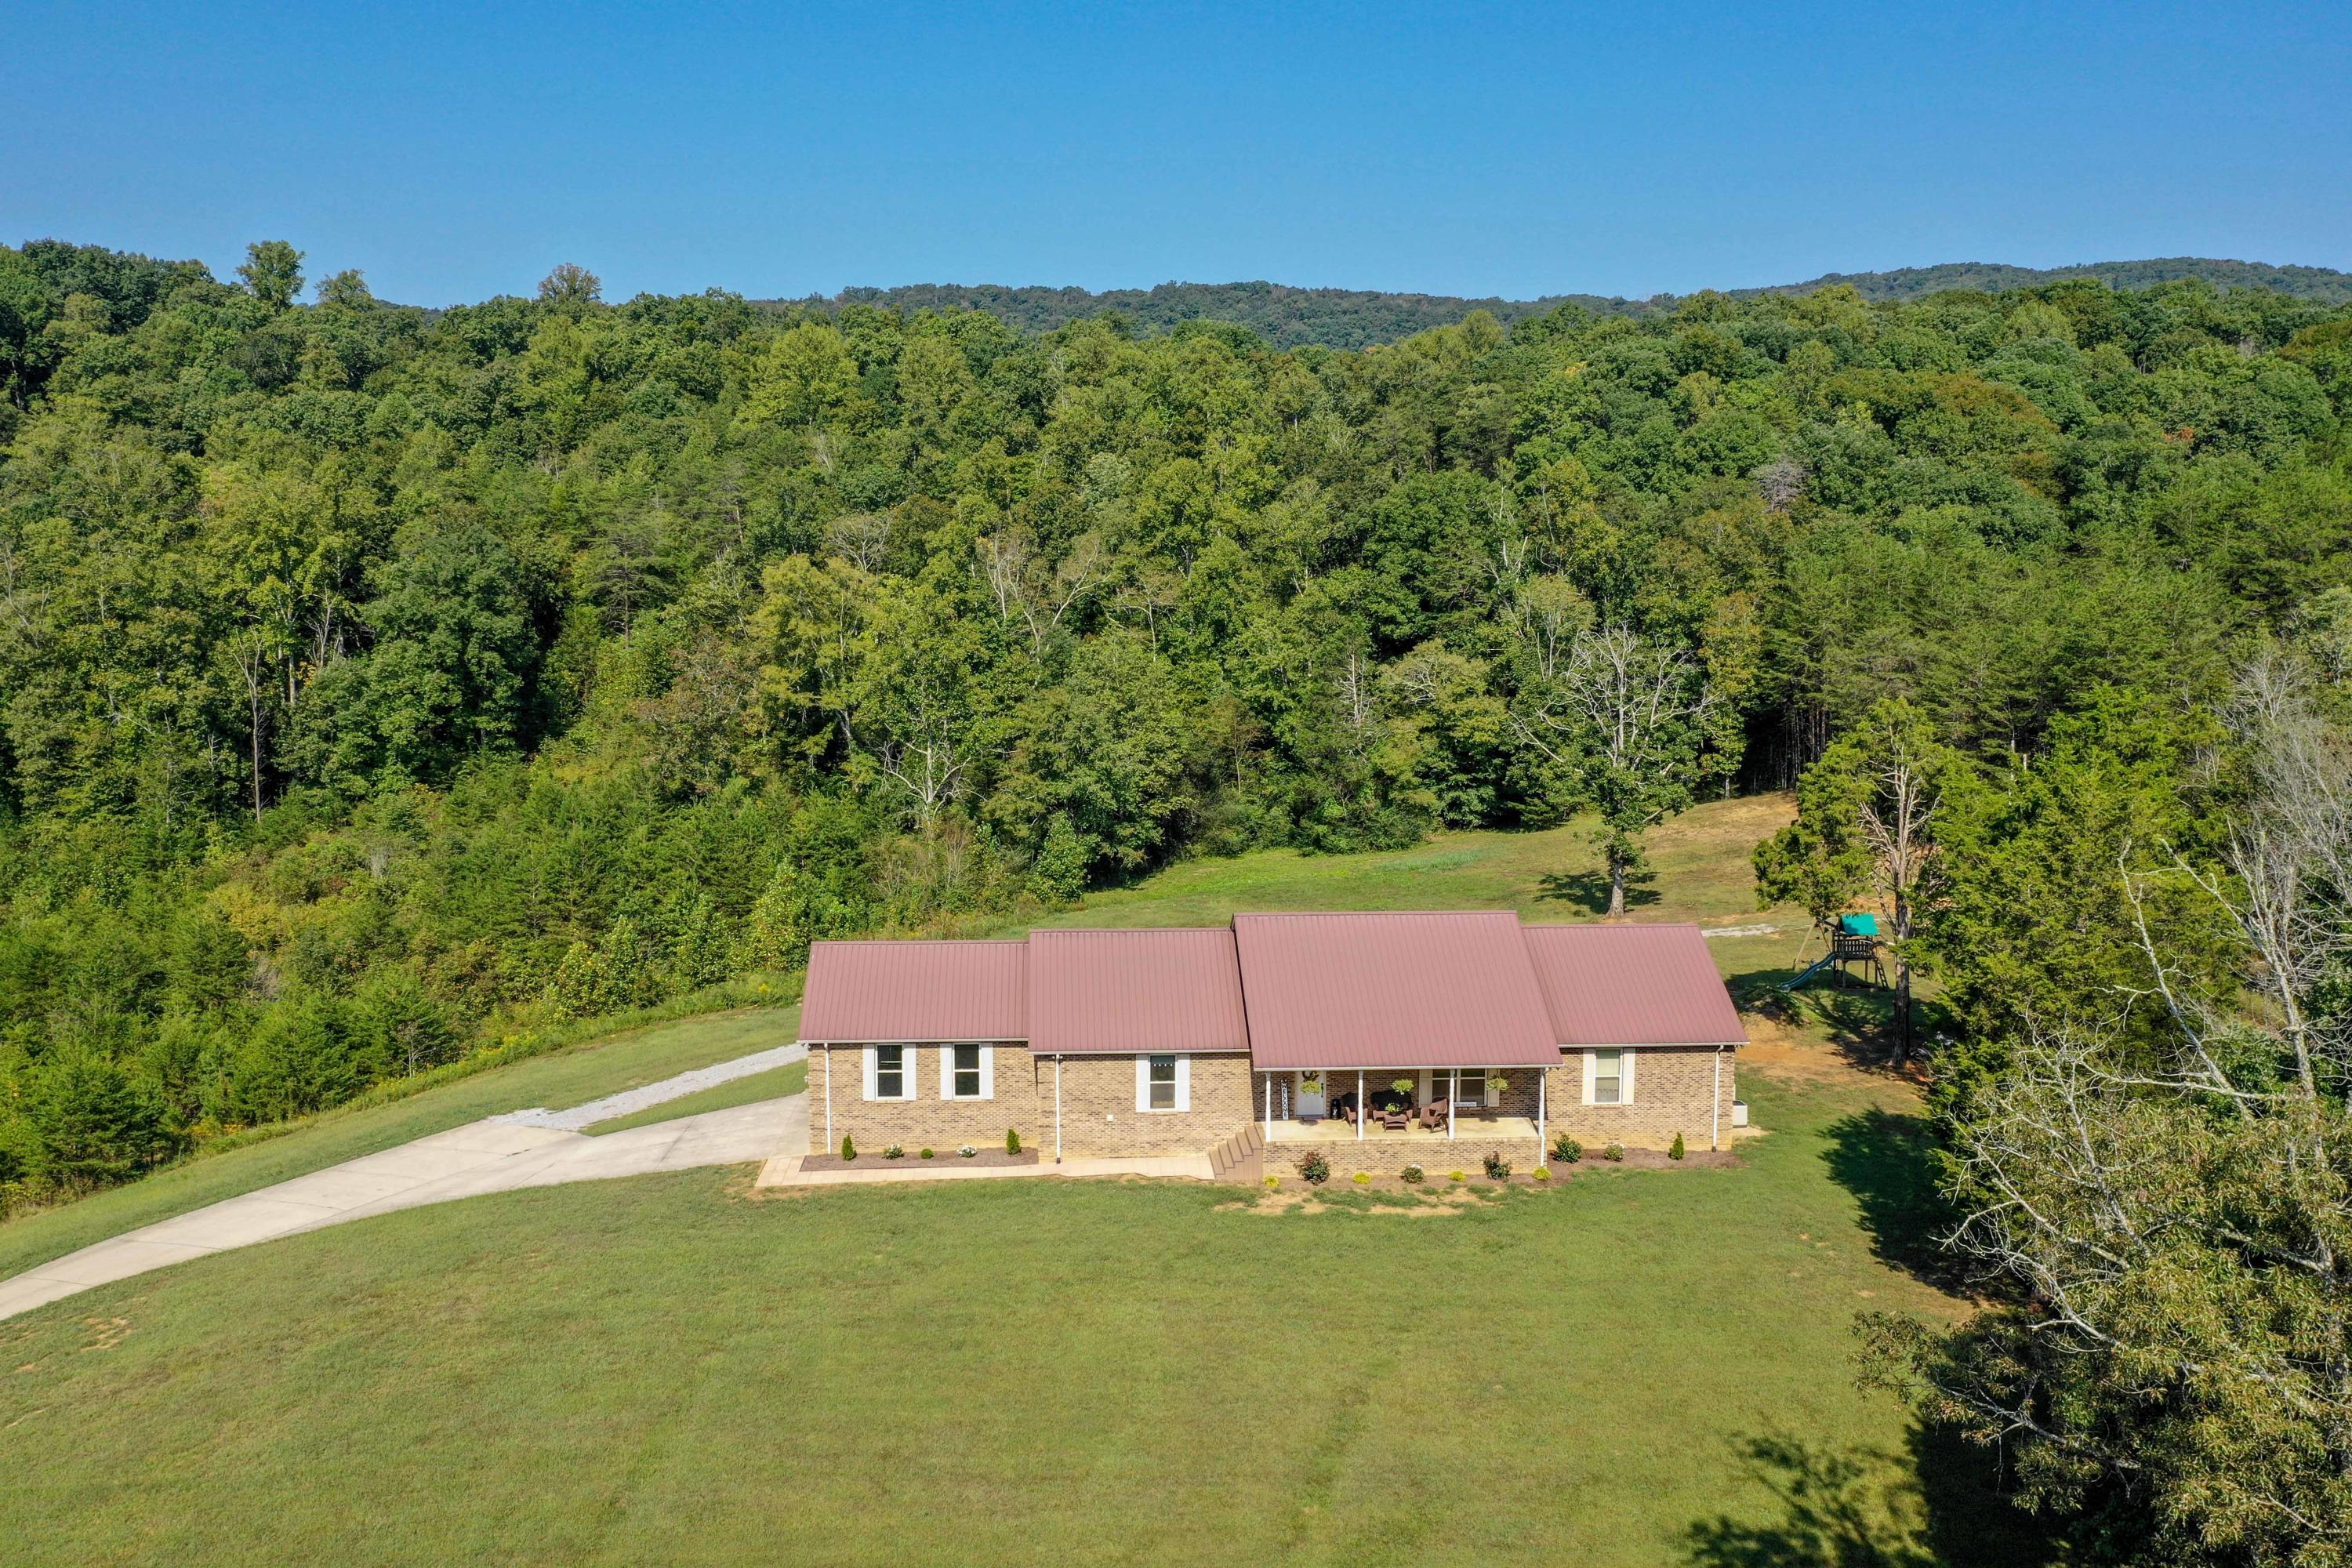 16867 Old State Hwy 28 - Pikeville,TN 37367 | Crye-Leike